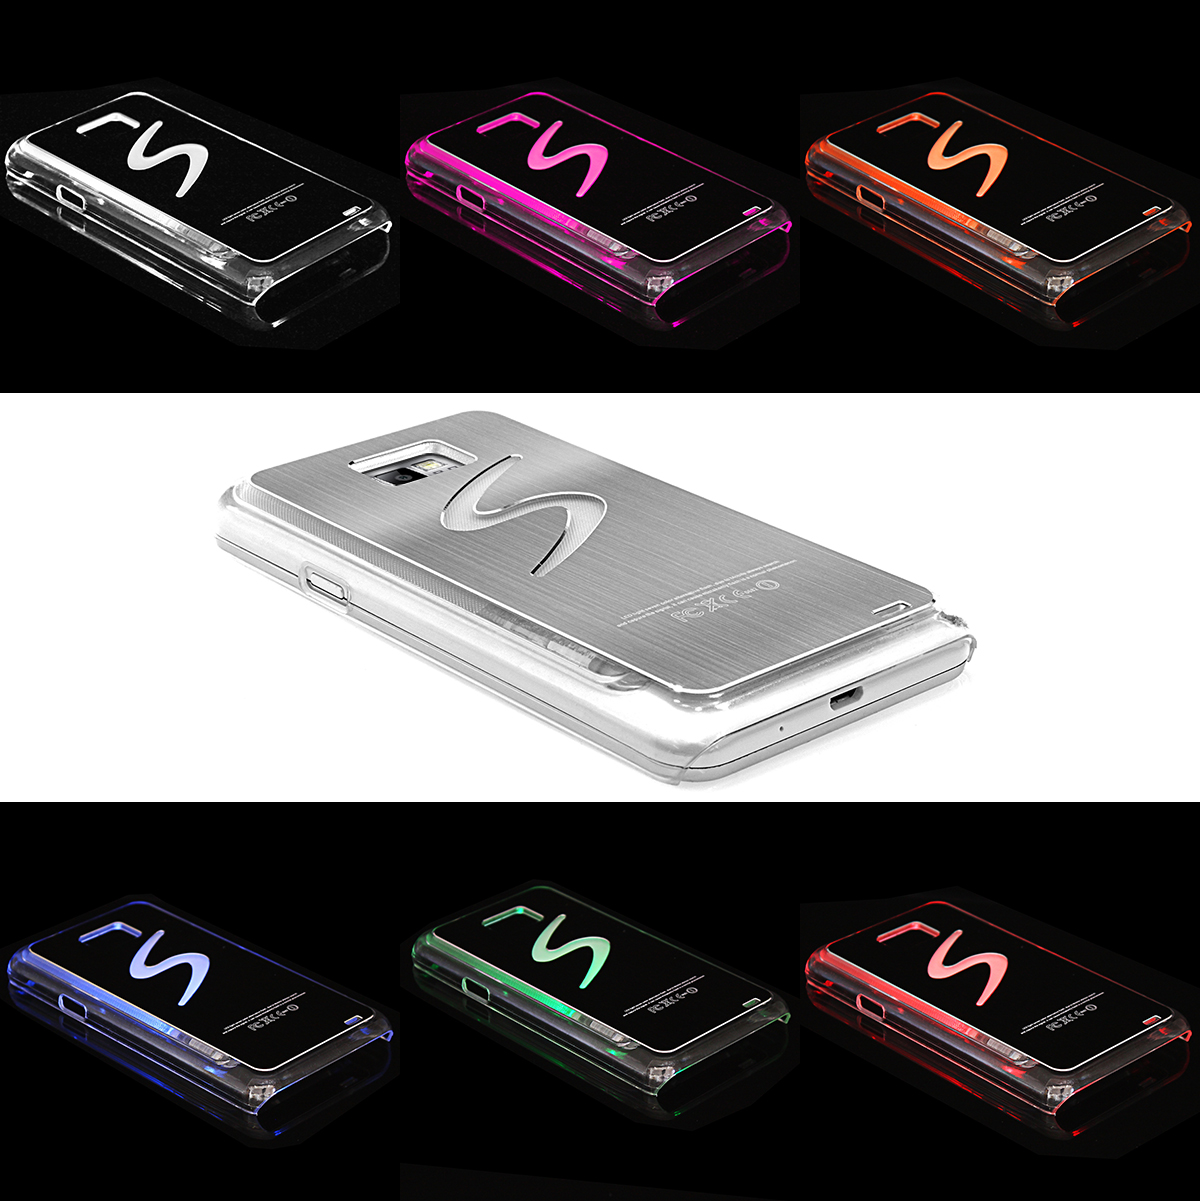 samsung galaxy s2 i9100 backcover handy h lle silber mit. Black Bedroom Furniture Sets. Home Design Ideas